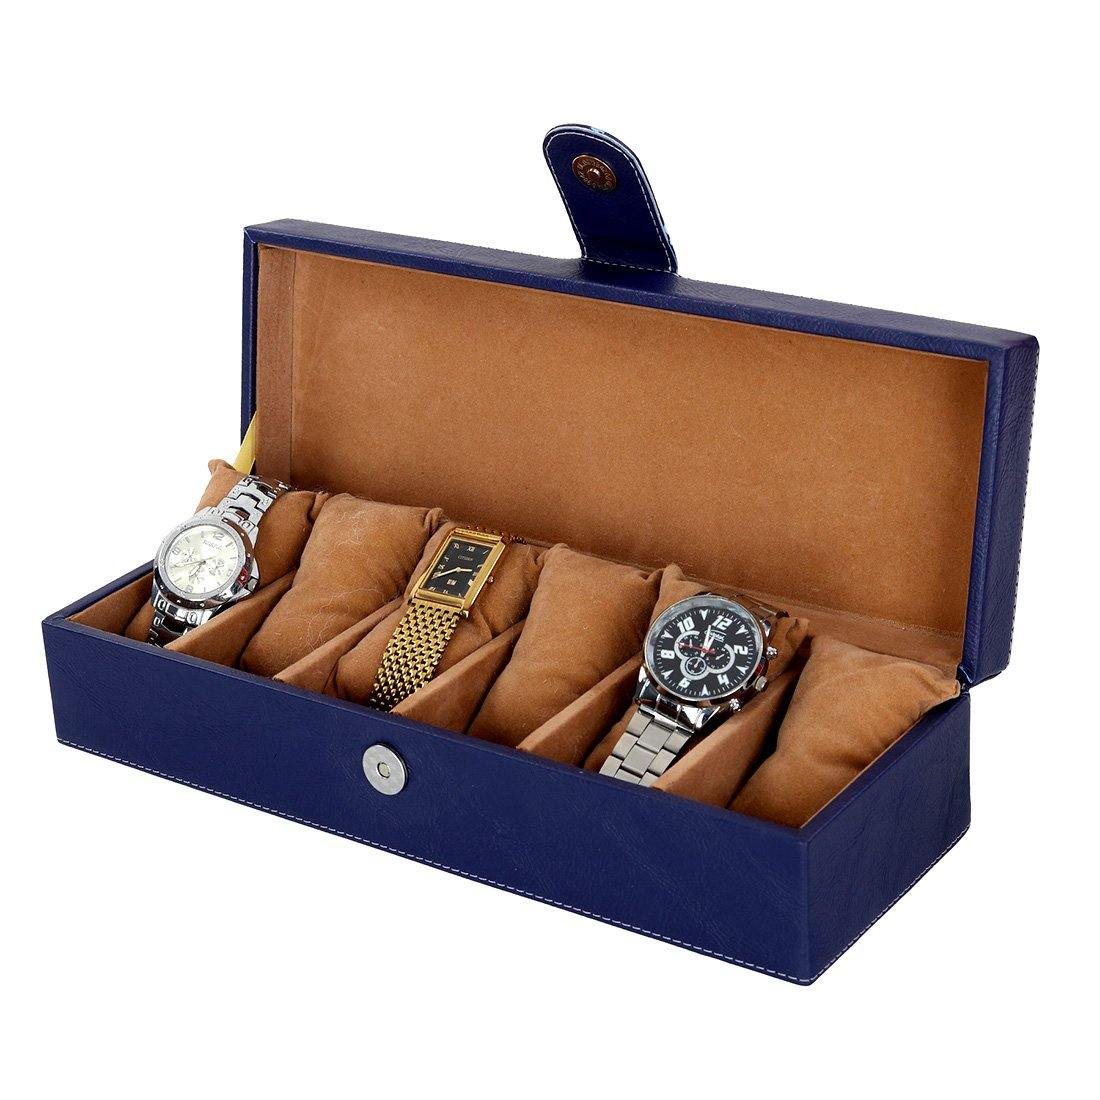 Leather World Unisex 6 Slots Watch Organiser Box - Leatherworldonline.net